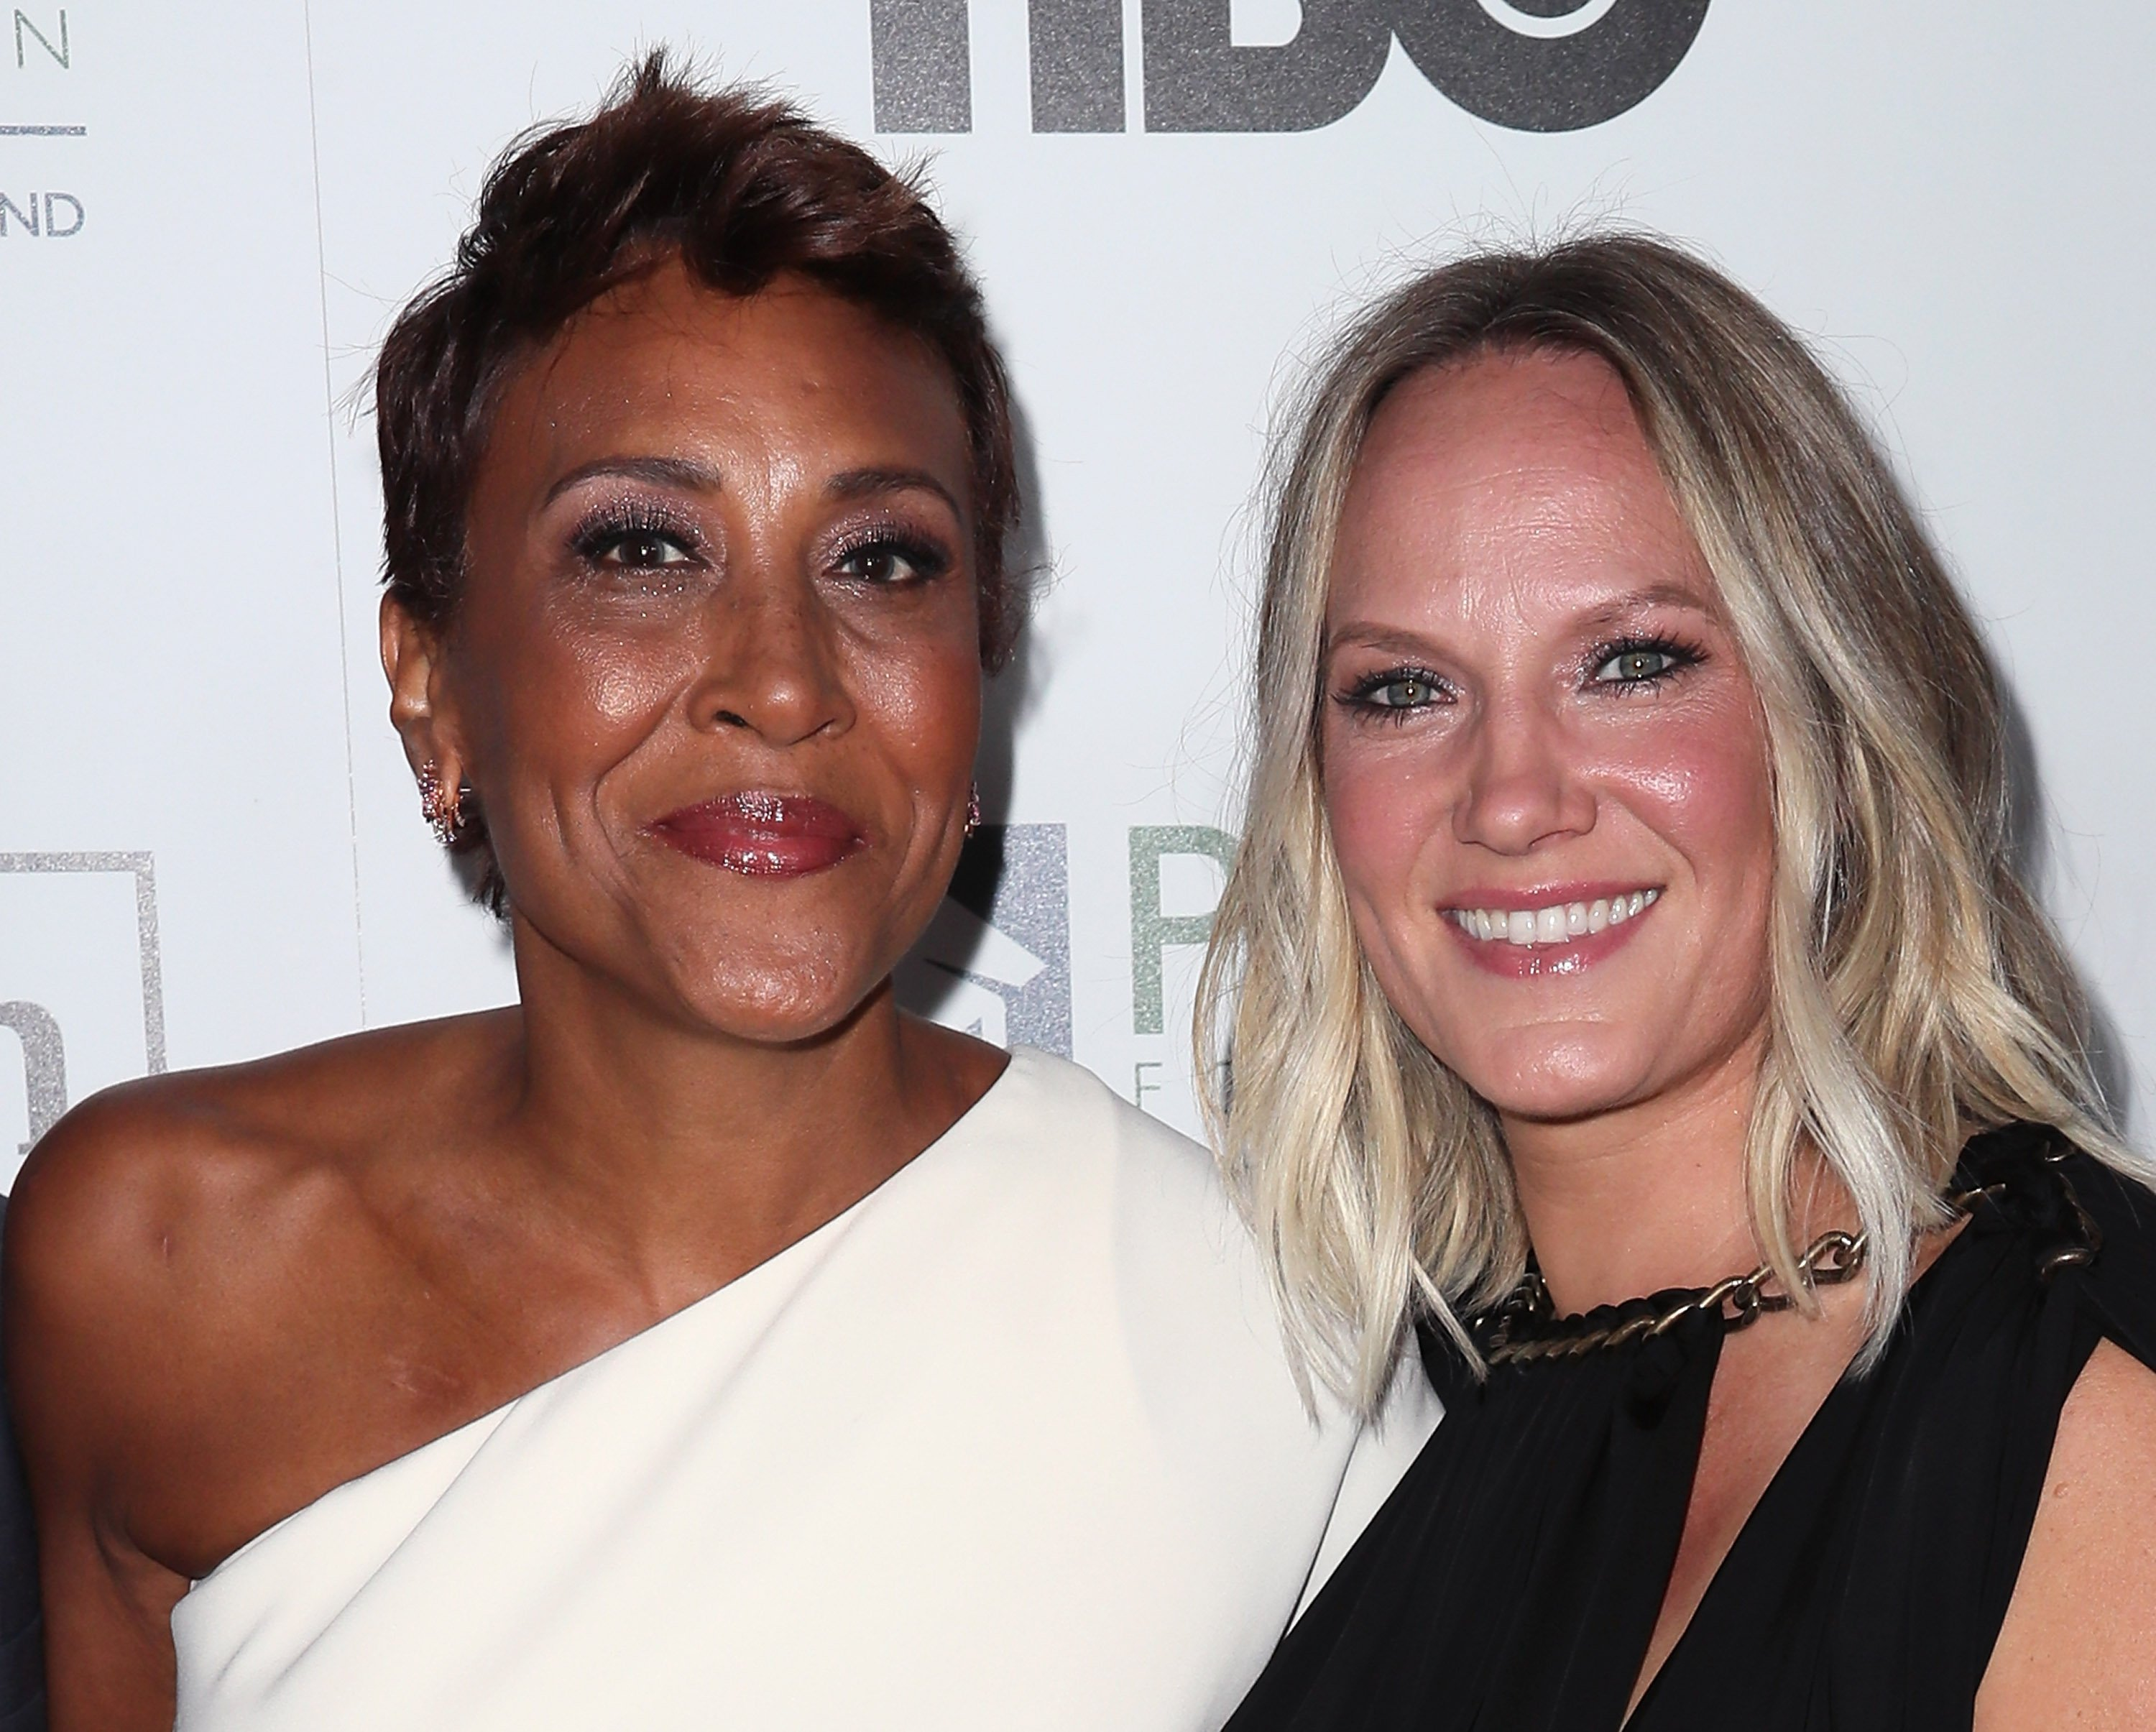 Robin Roberts and Amber Laign attends the 2016 Point Honors Los Angeles Gala at The Beverly Hilton Hotel on October 1, 2016. | Photo: Getty Images